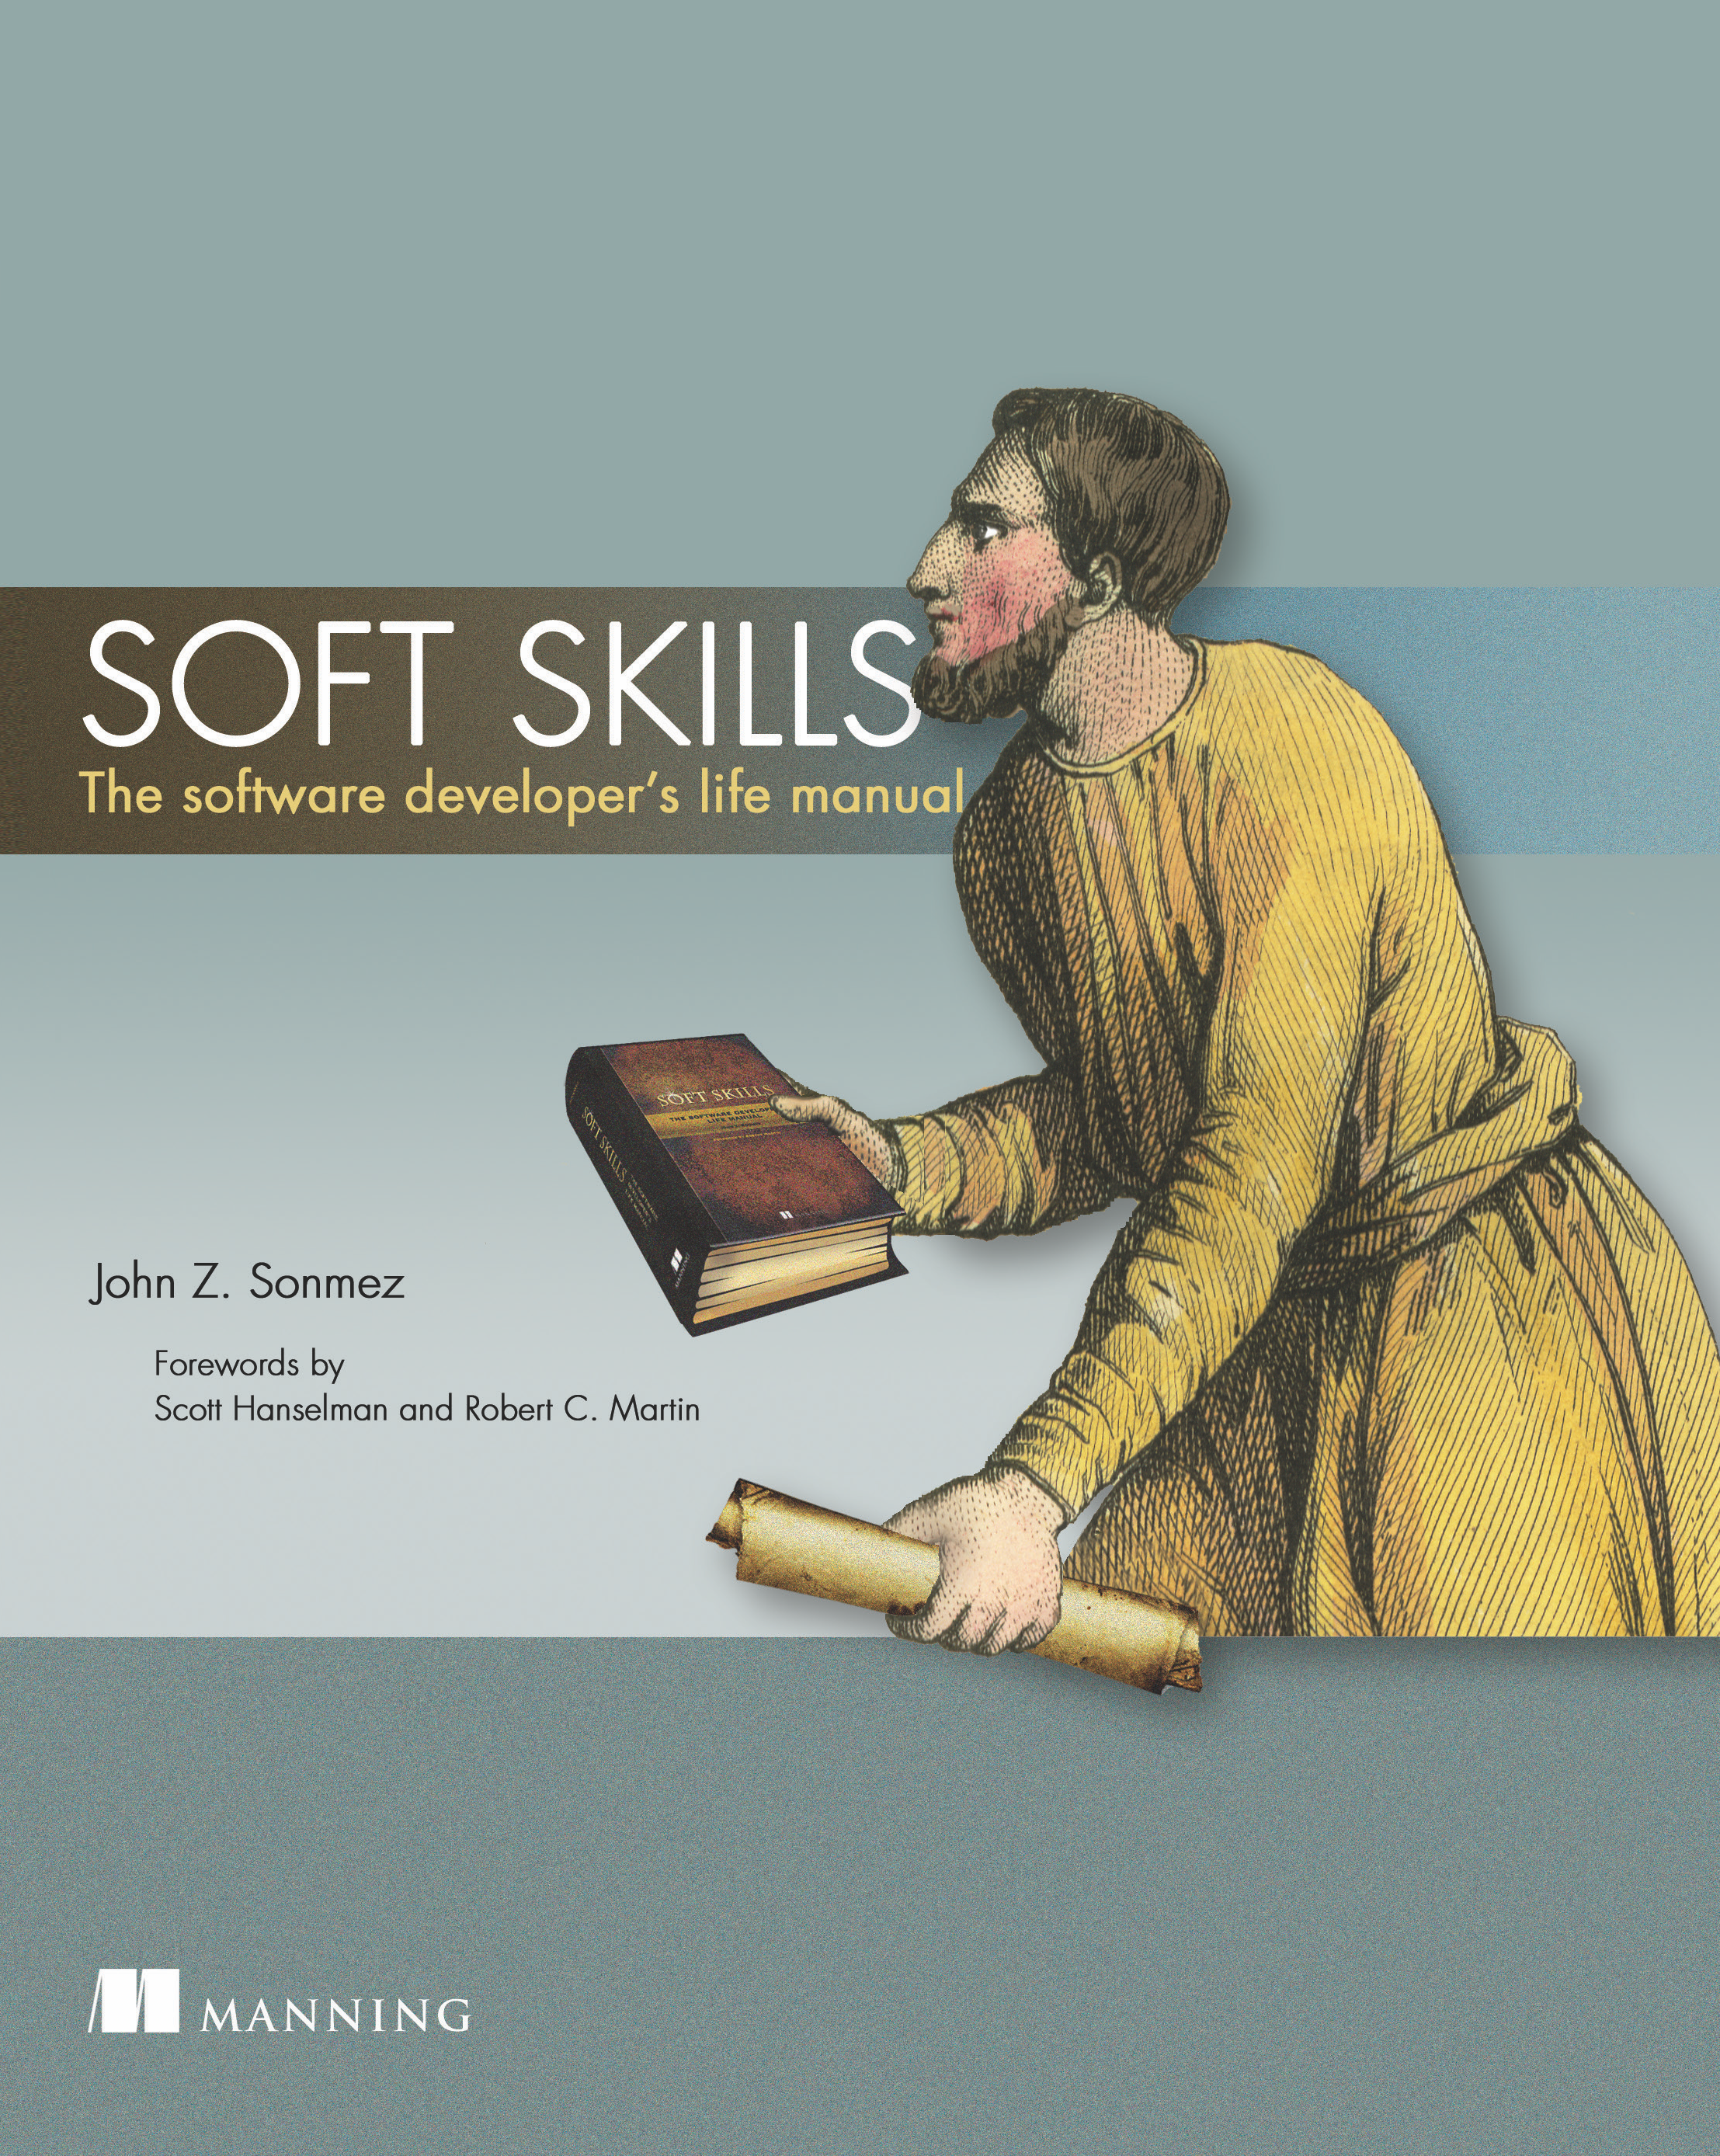 Soft Skills book cover